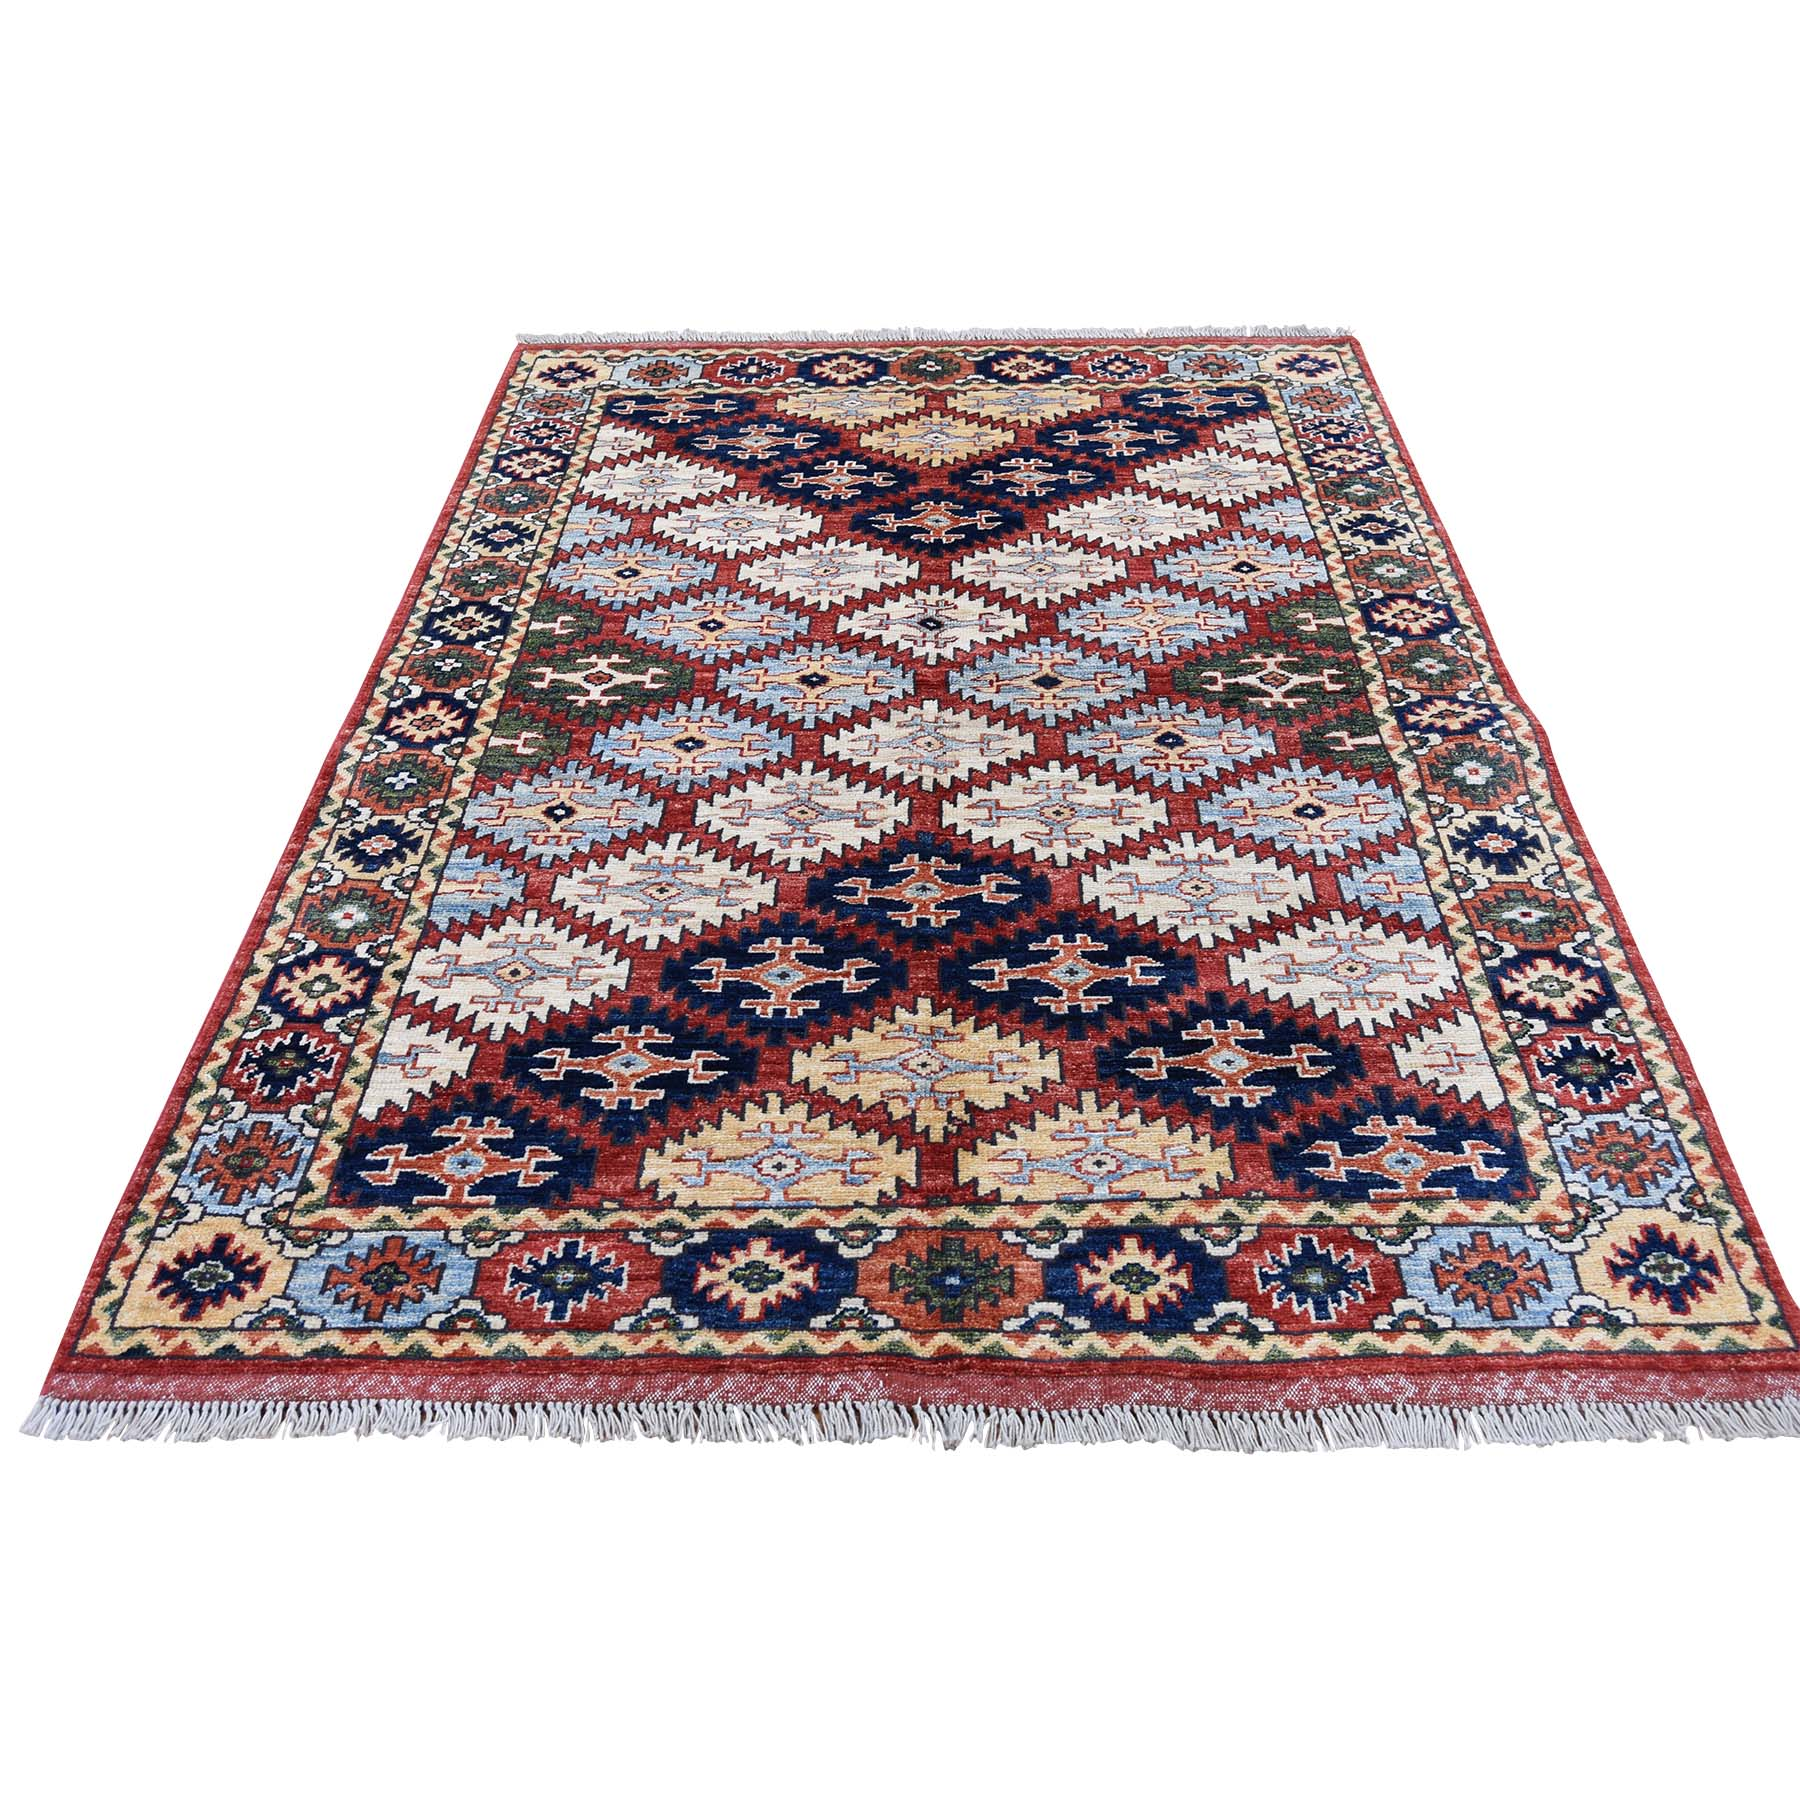 "4'X5'7"" Afghan Ersari Repetitive Design Hand Knotted Oriental Rug moadc97c"